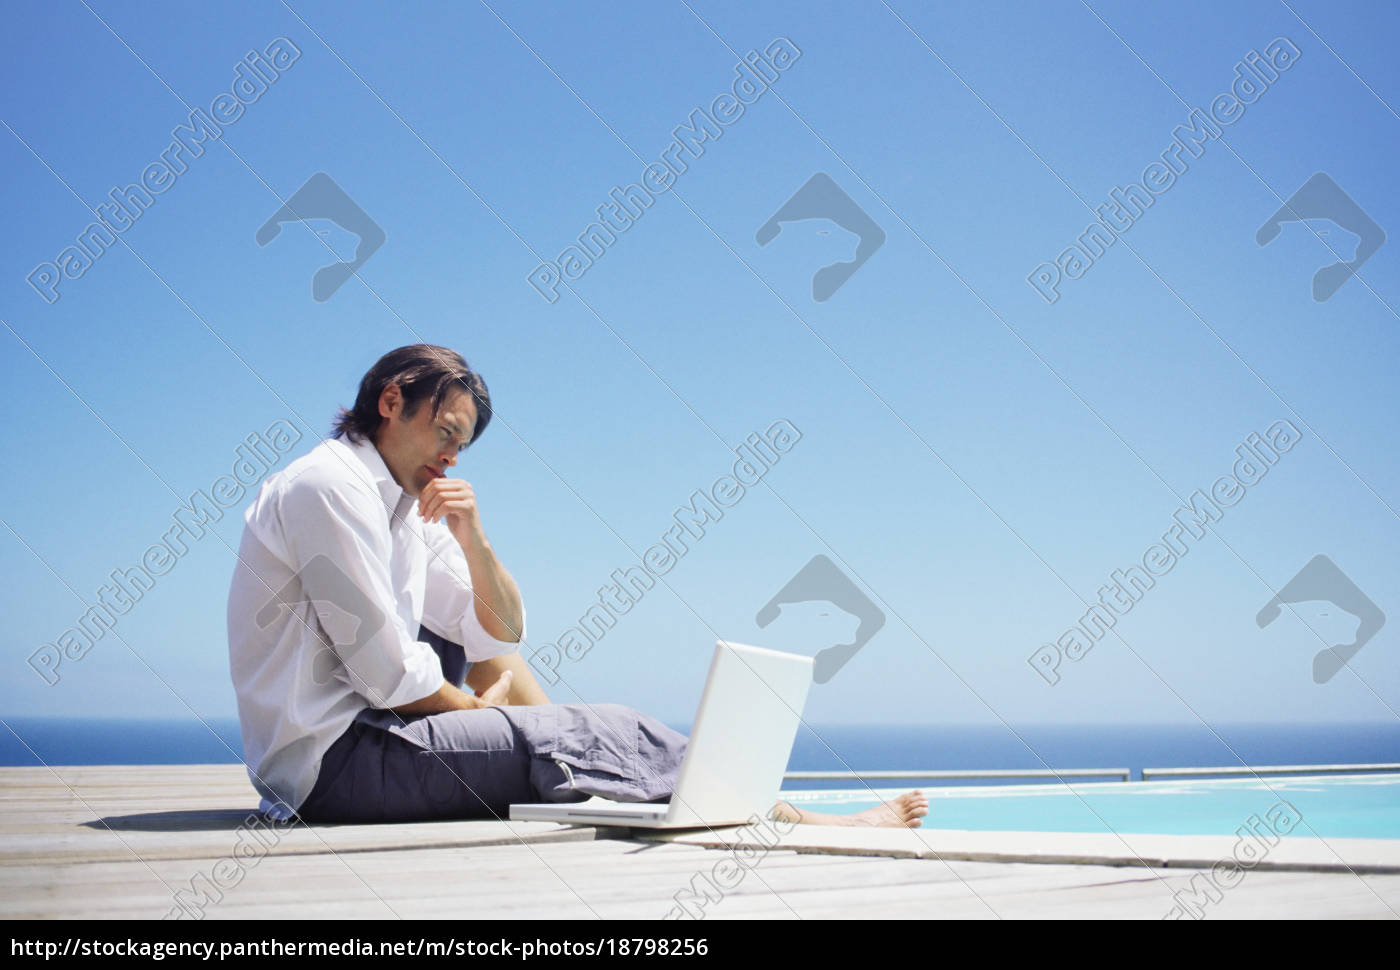 man, with, laptop, by, swimming, pool - 18798256